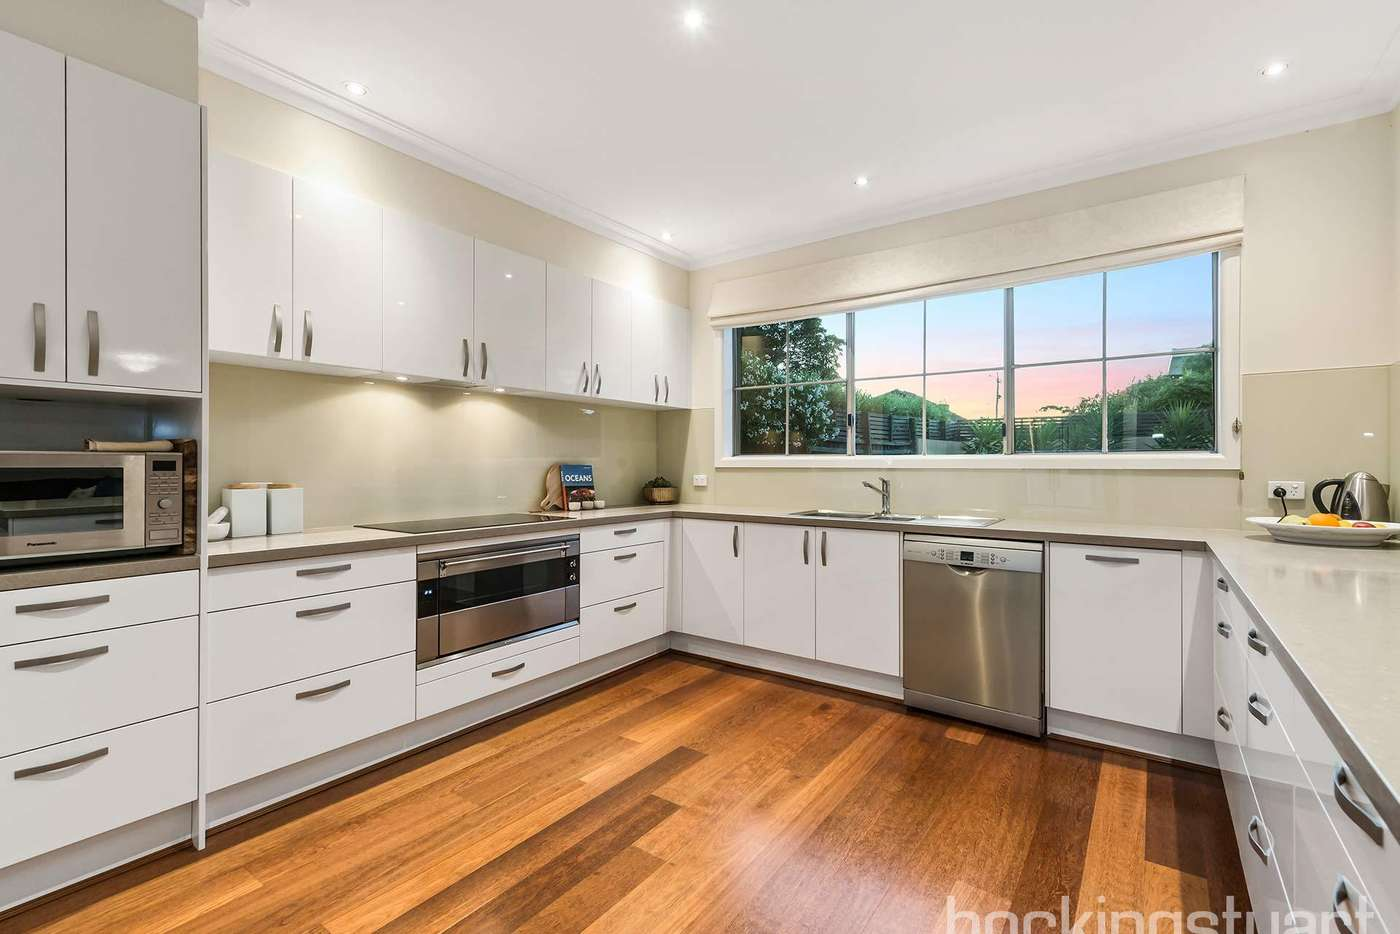 Fifth view of Homely house listing, 29 Sea Parade, Mentone VIC 3194